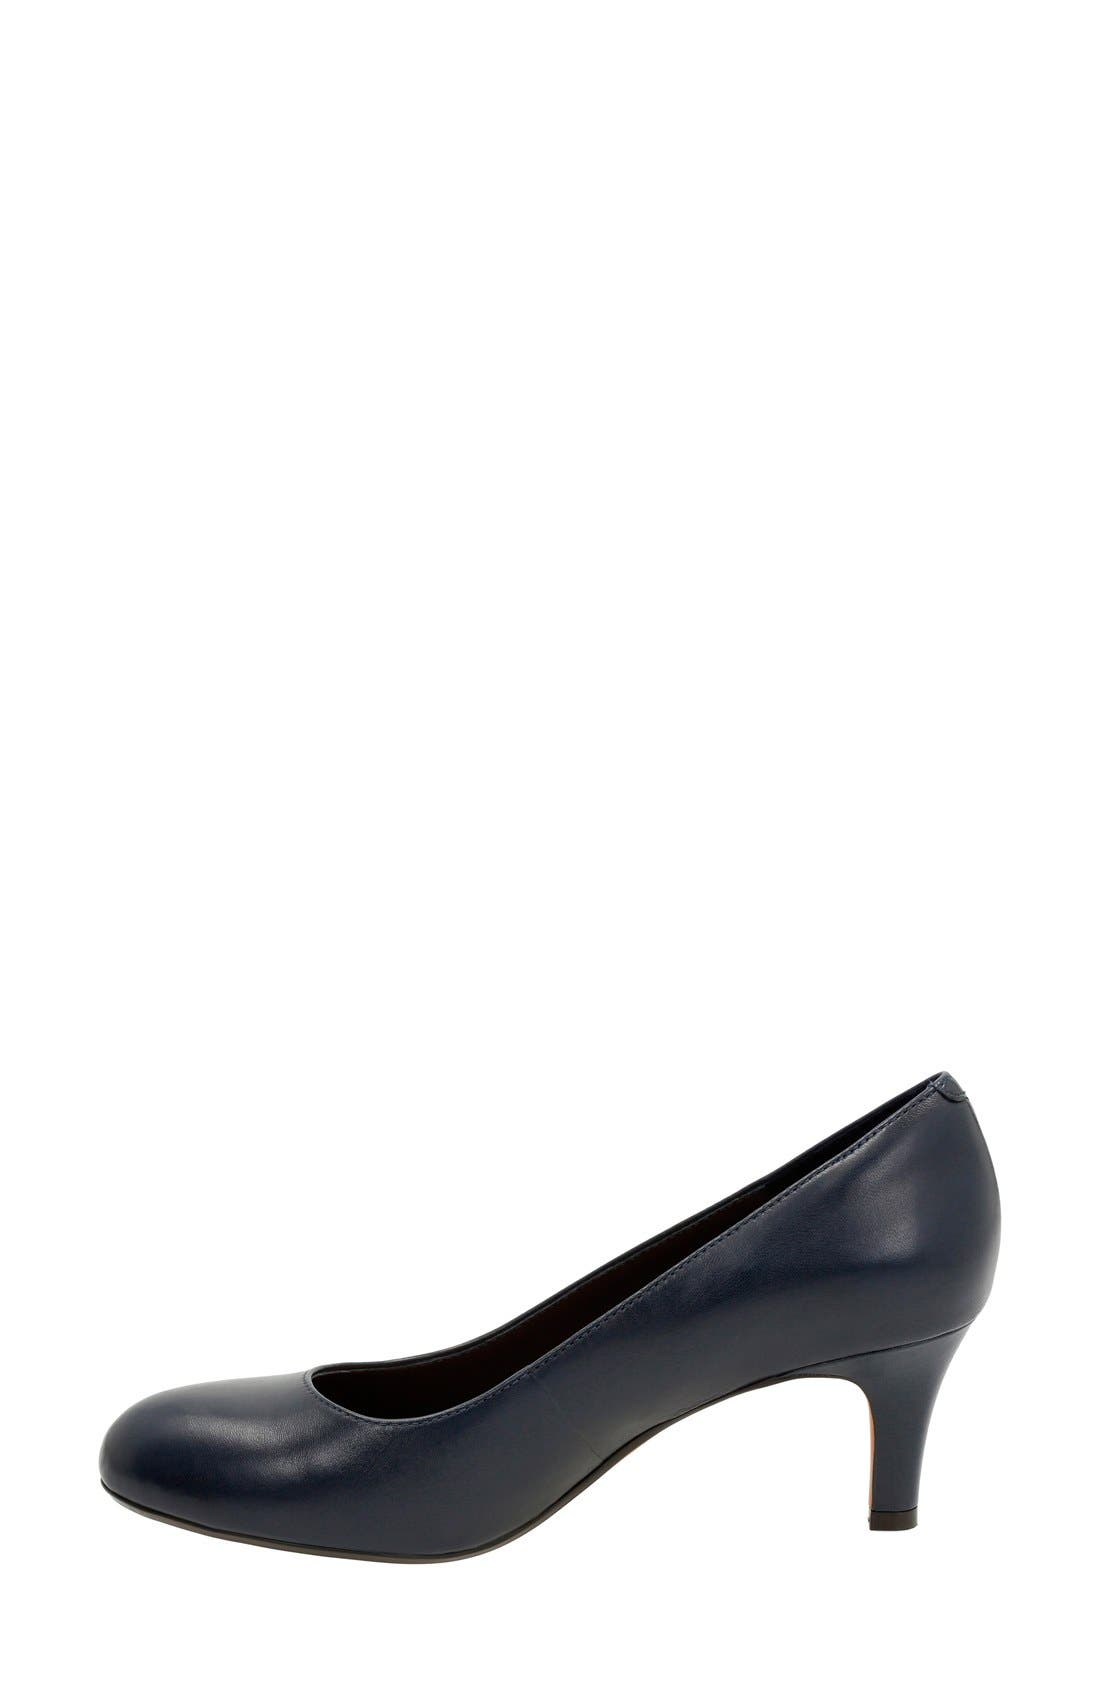 'Heavenly Heart' Pump,                             Alternate thumbnail 2, color,                             Navy Leather